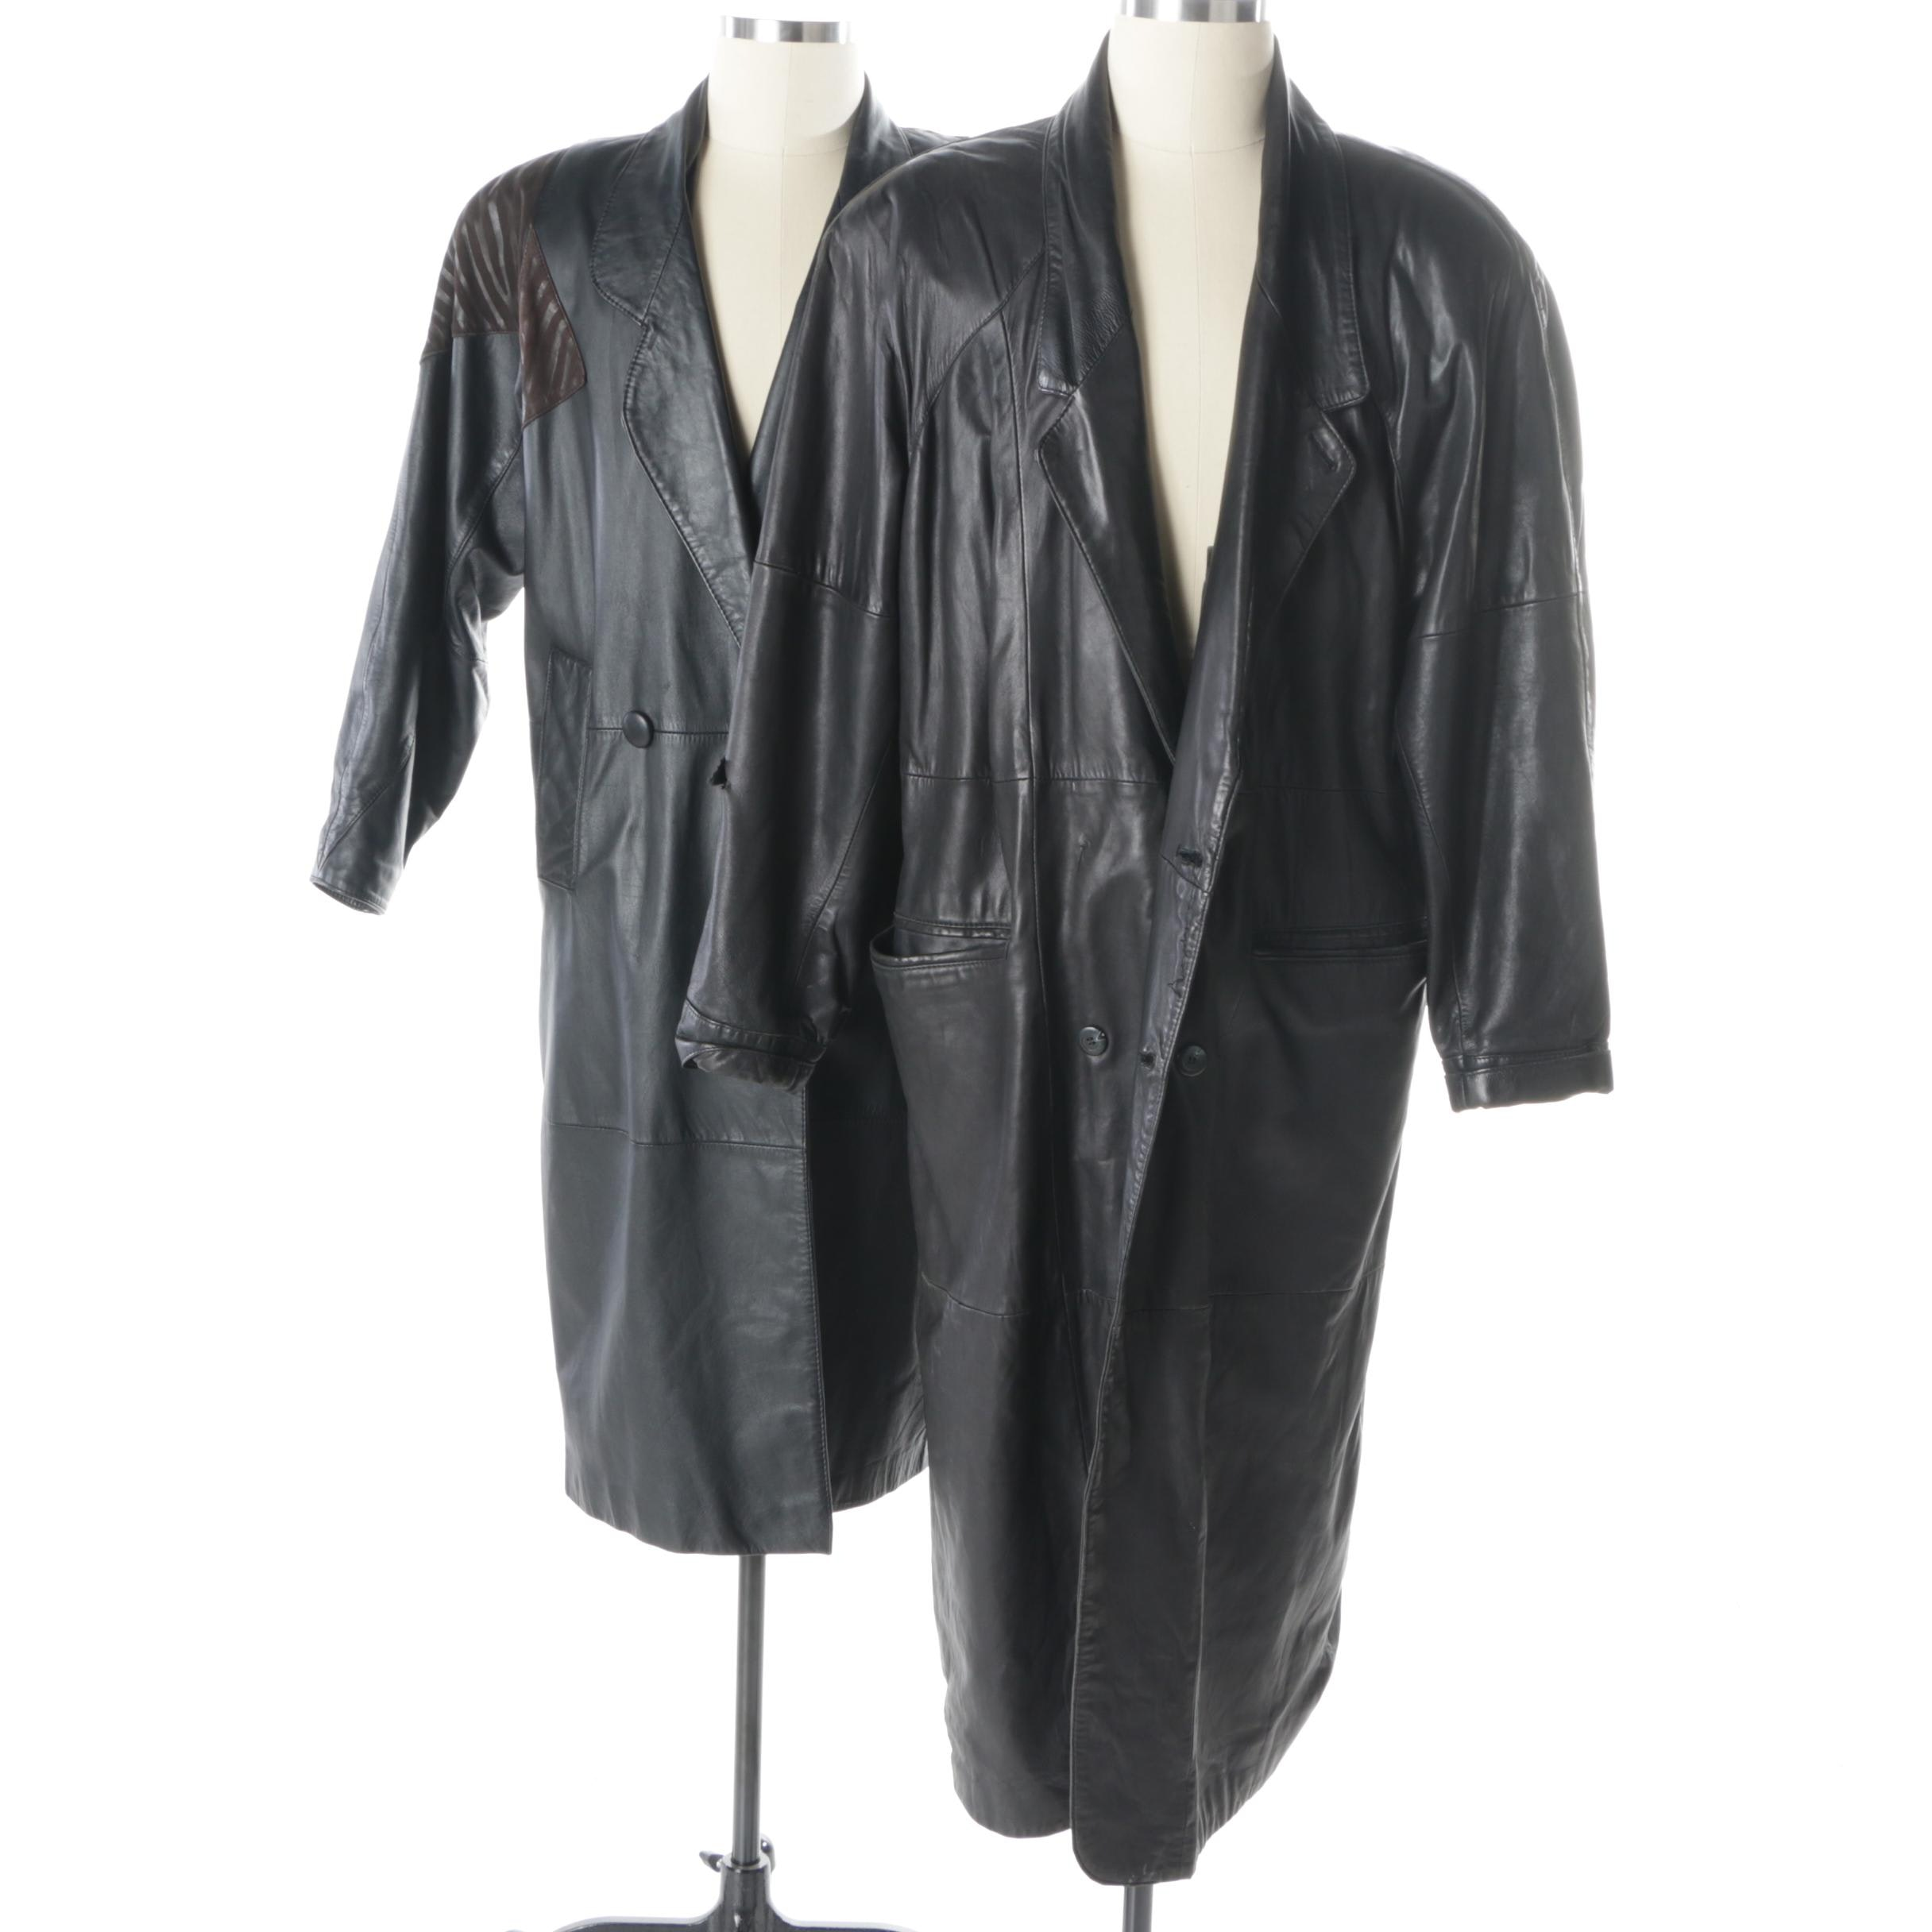 Women's and Men's Double-Breasted Black Leather Coats Including J. Walden